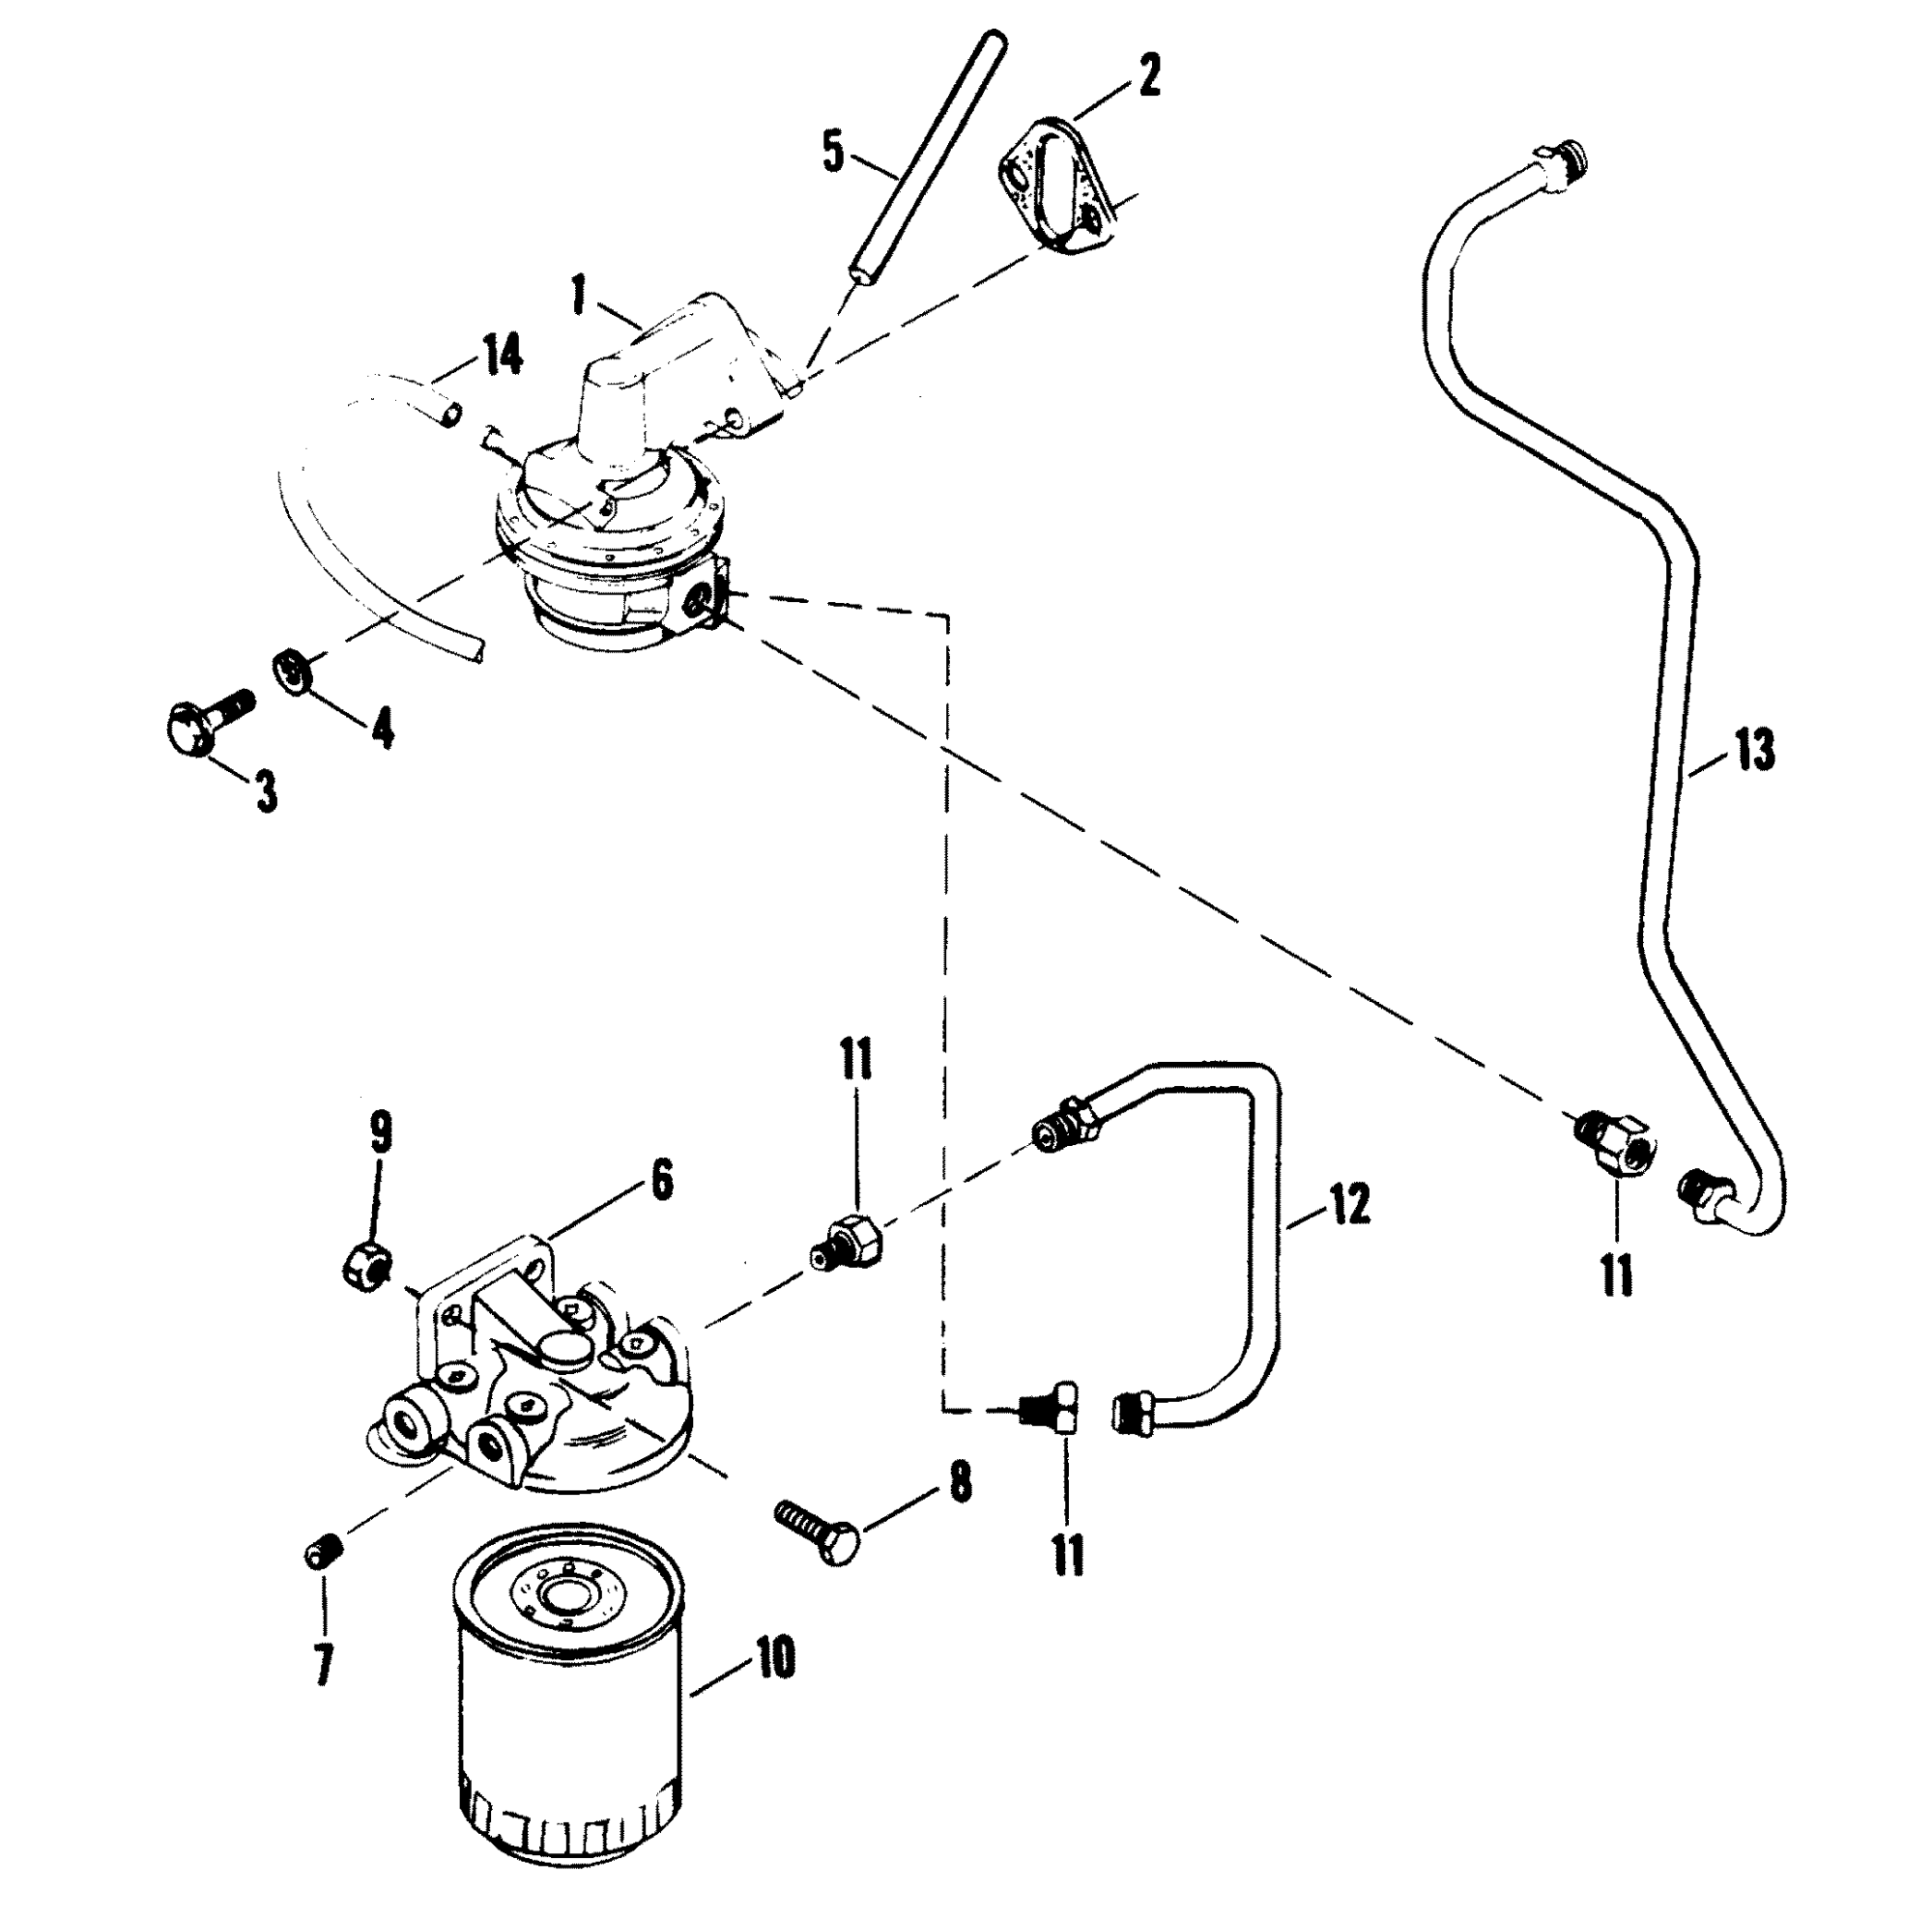 hight resolution of 454 jet boat wiring diagram